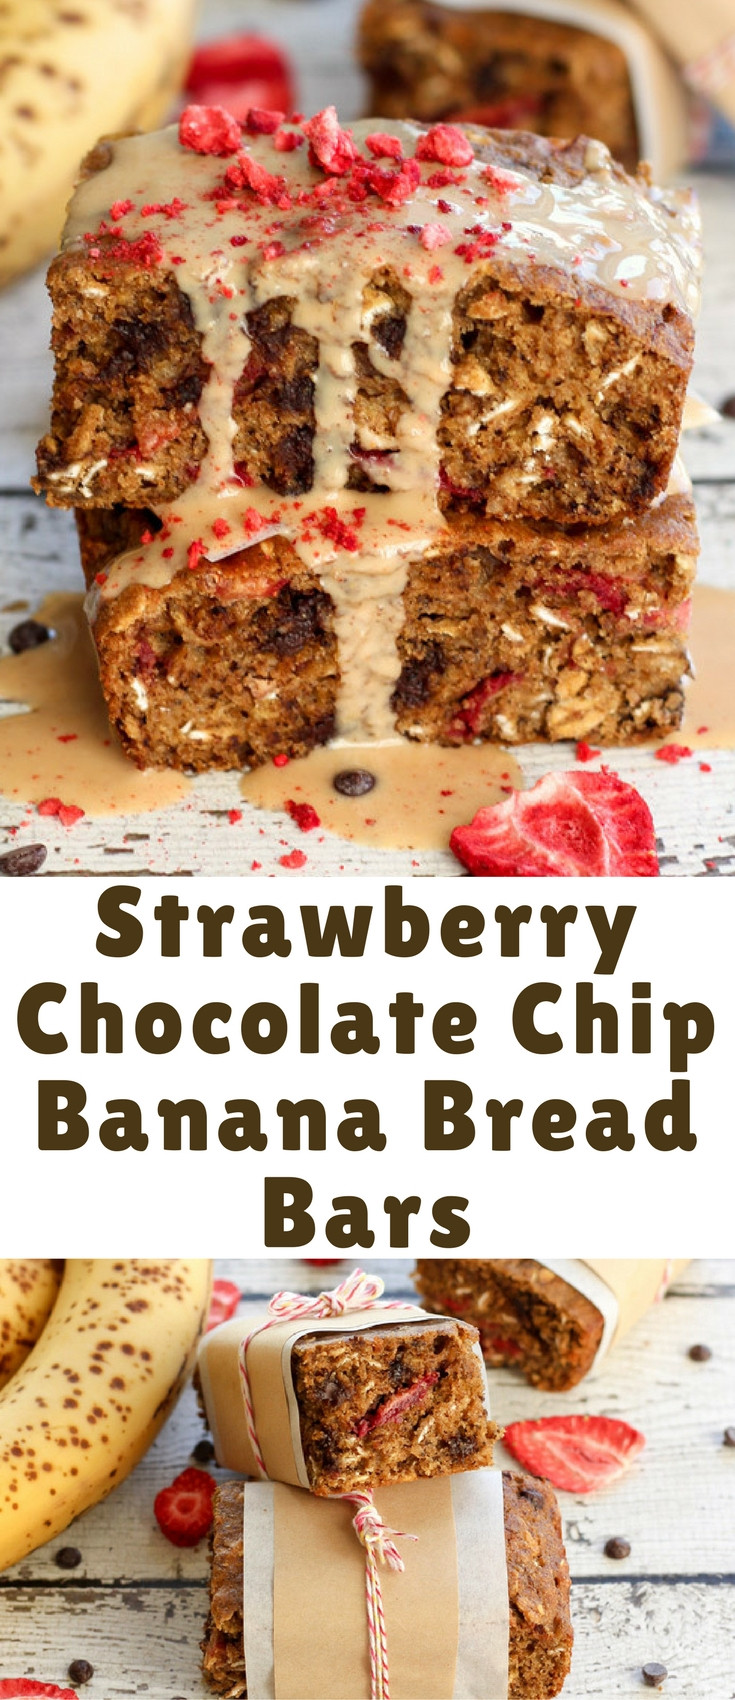 Strawberry Chocolate Chip Banana Bread Bars. Moist and hearty whole grain banana bread filled with mini chocolate chips and freeze-dried strawberries. A great take anywhere treat or afternoon snack!